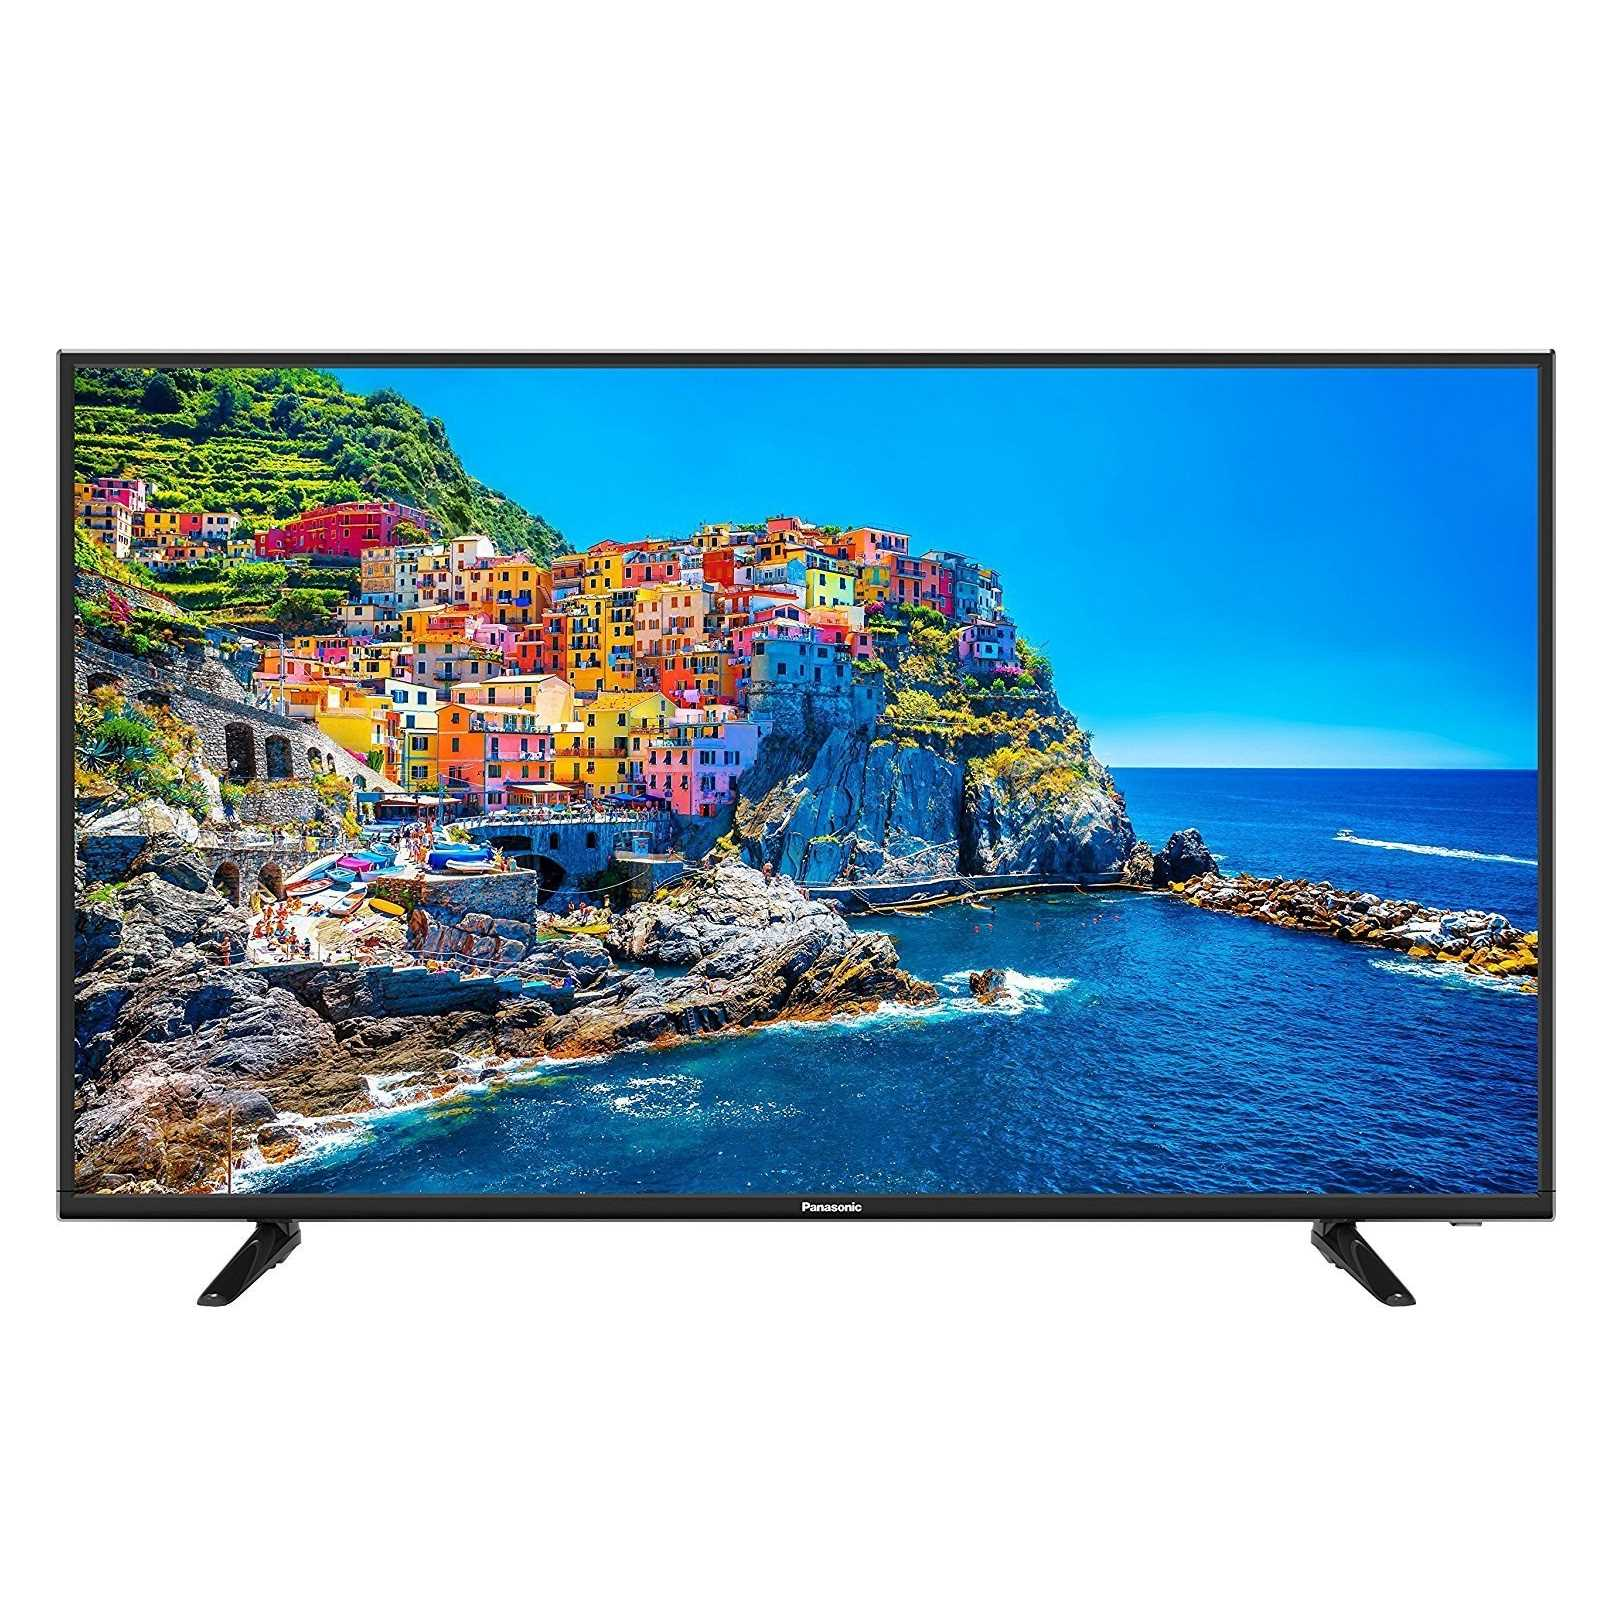 Panasonic 39E200DX 39 Inch HD Ready LED Television